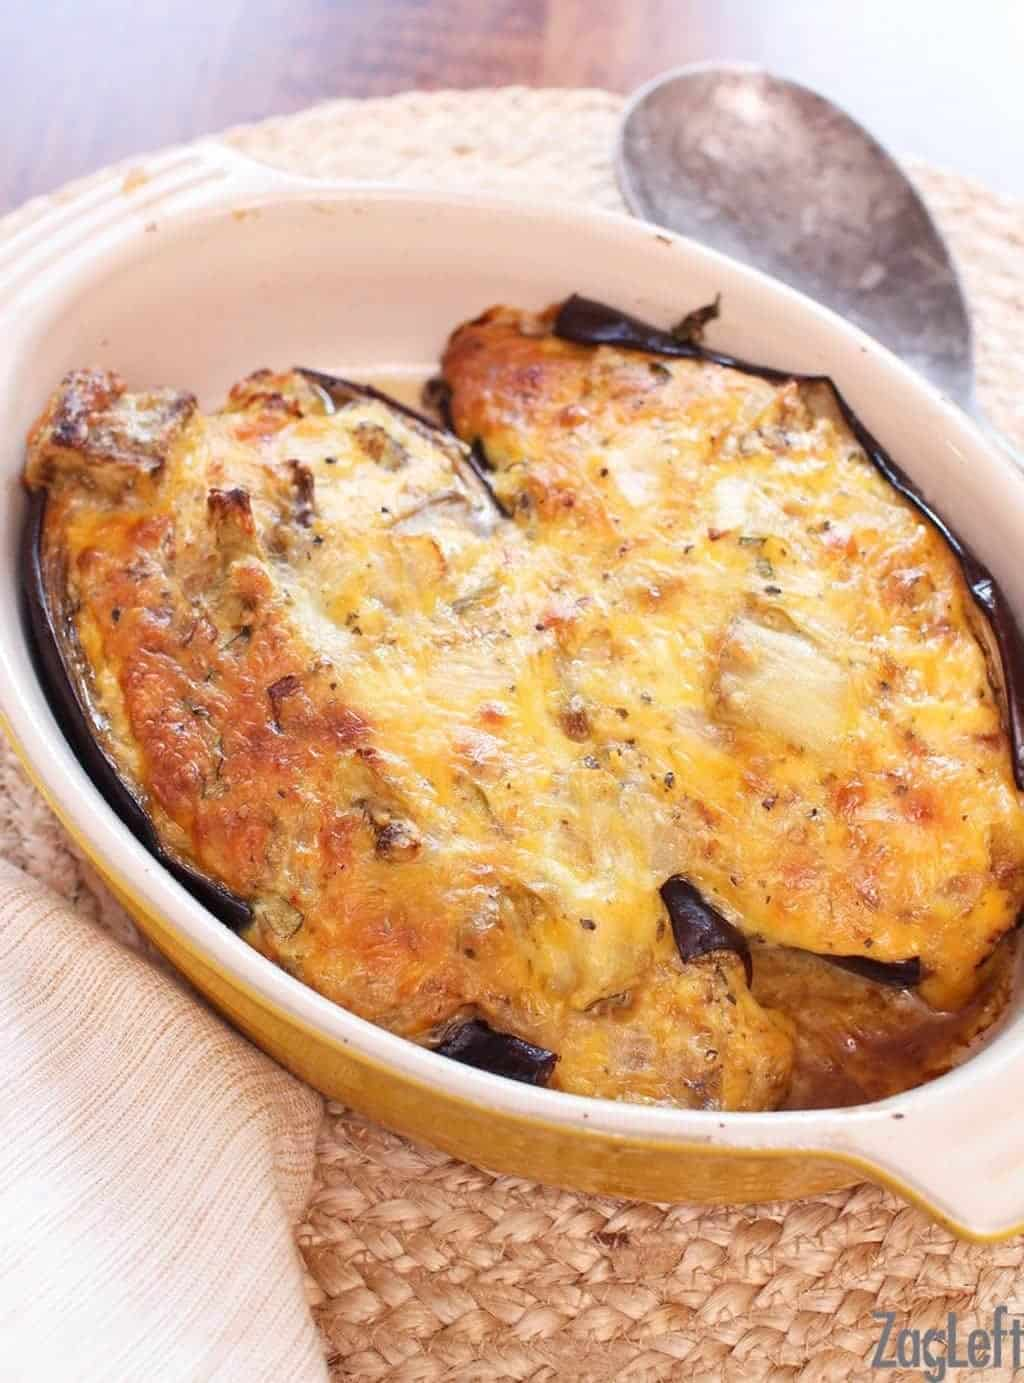 Two halves of twice baked eggplant in a cooking dish